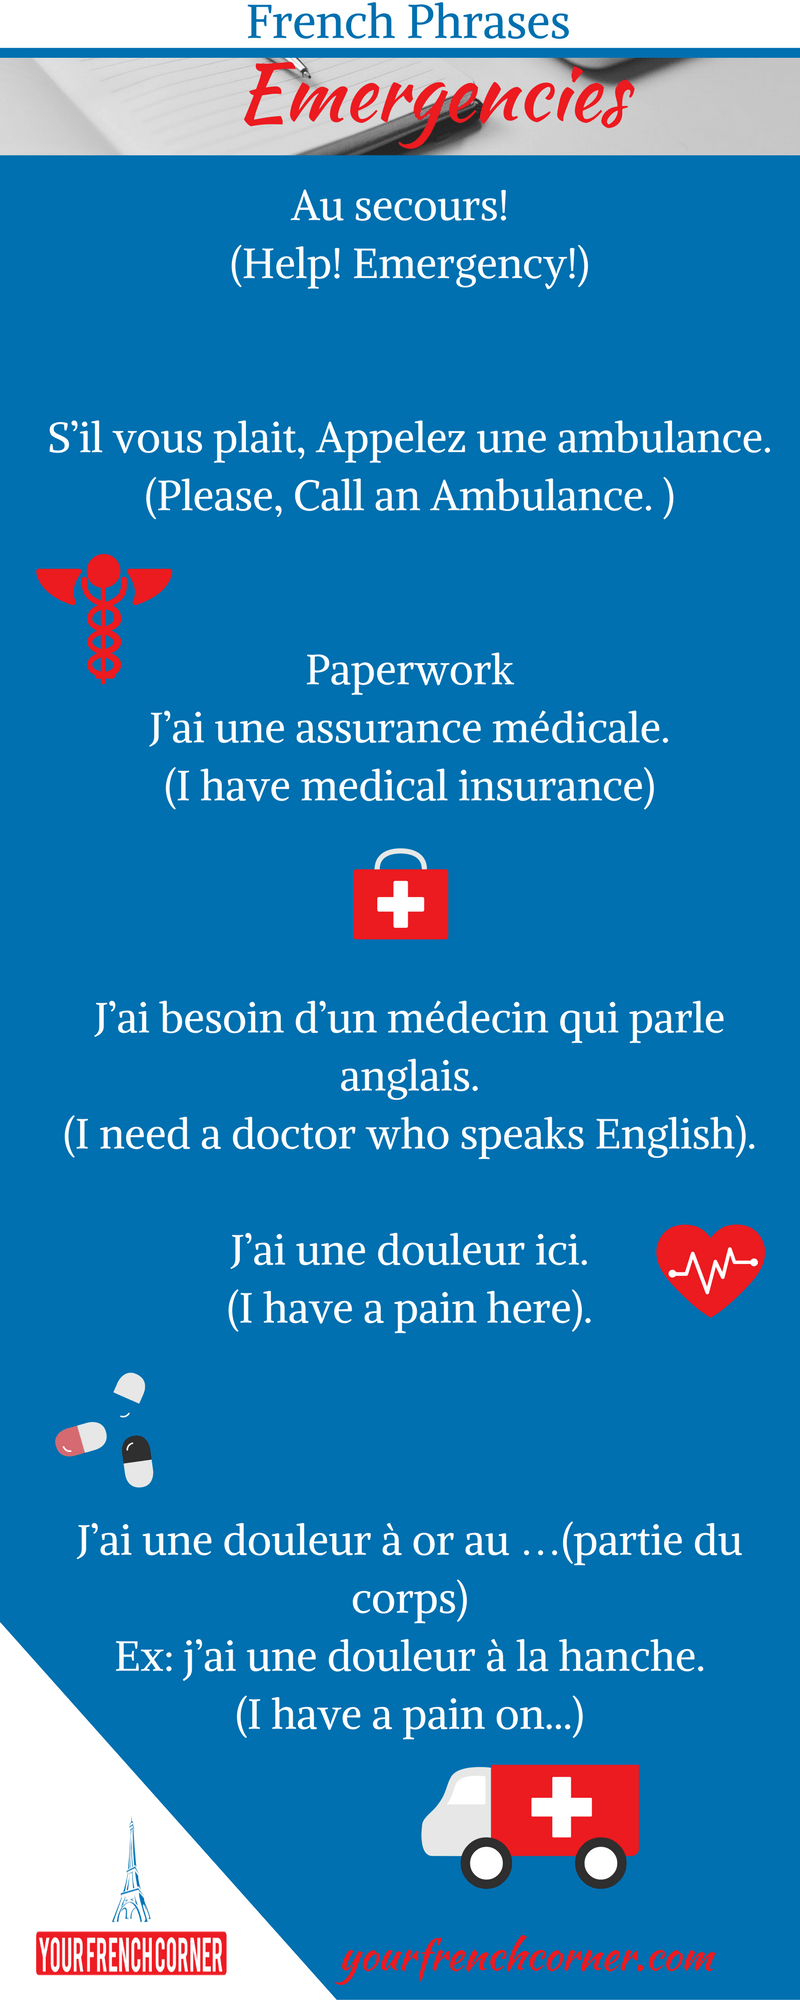 Geeky image in french travel phrases printable